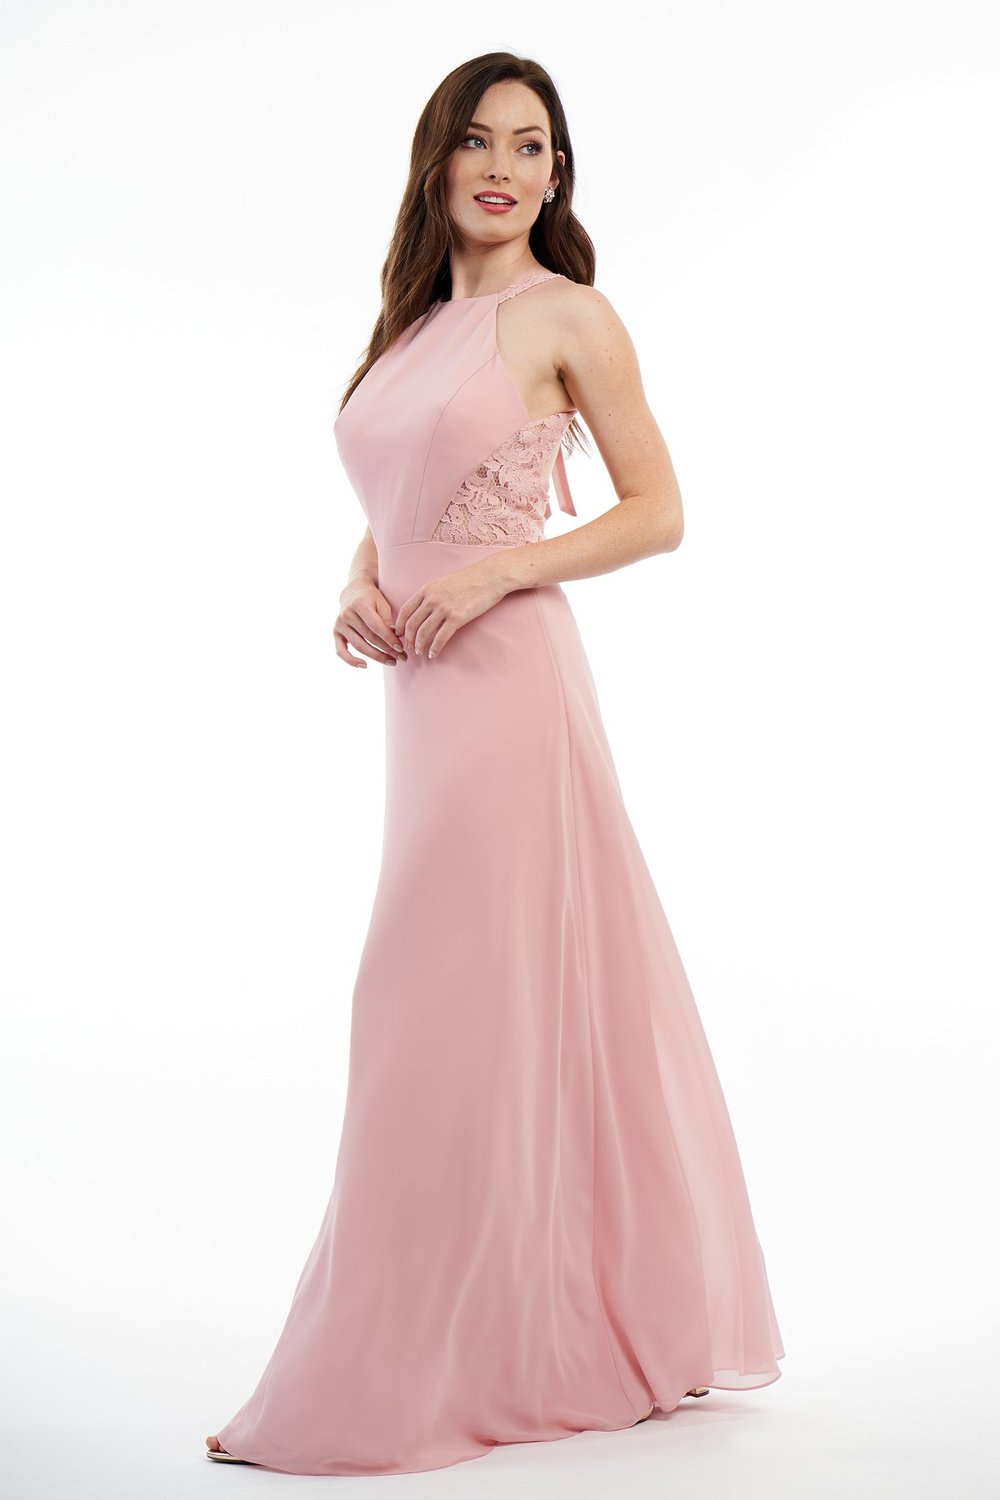 P2106011 -  Pretty charlotte chiffon and lace floor length bridesmaid dress with a jewel neckline and open back. Lace detail on the sides of the bodice and a bow on the top of the open back to complete the look.      Available in 18 colors